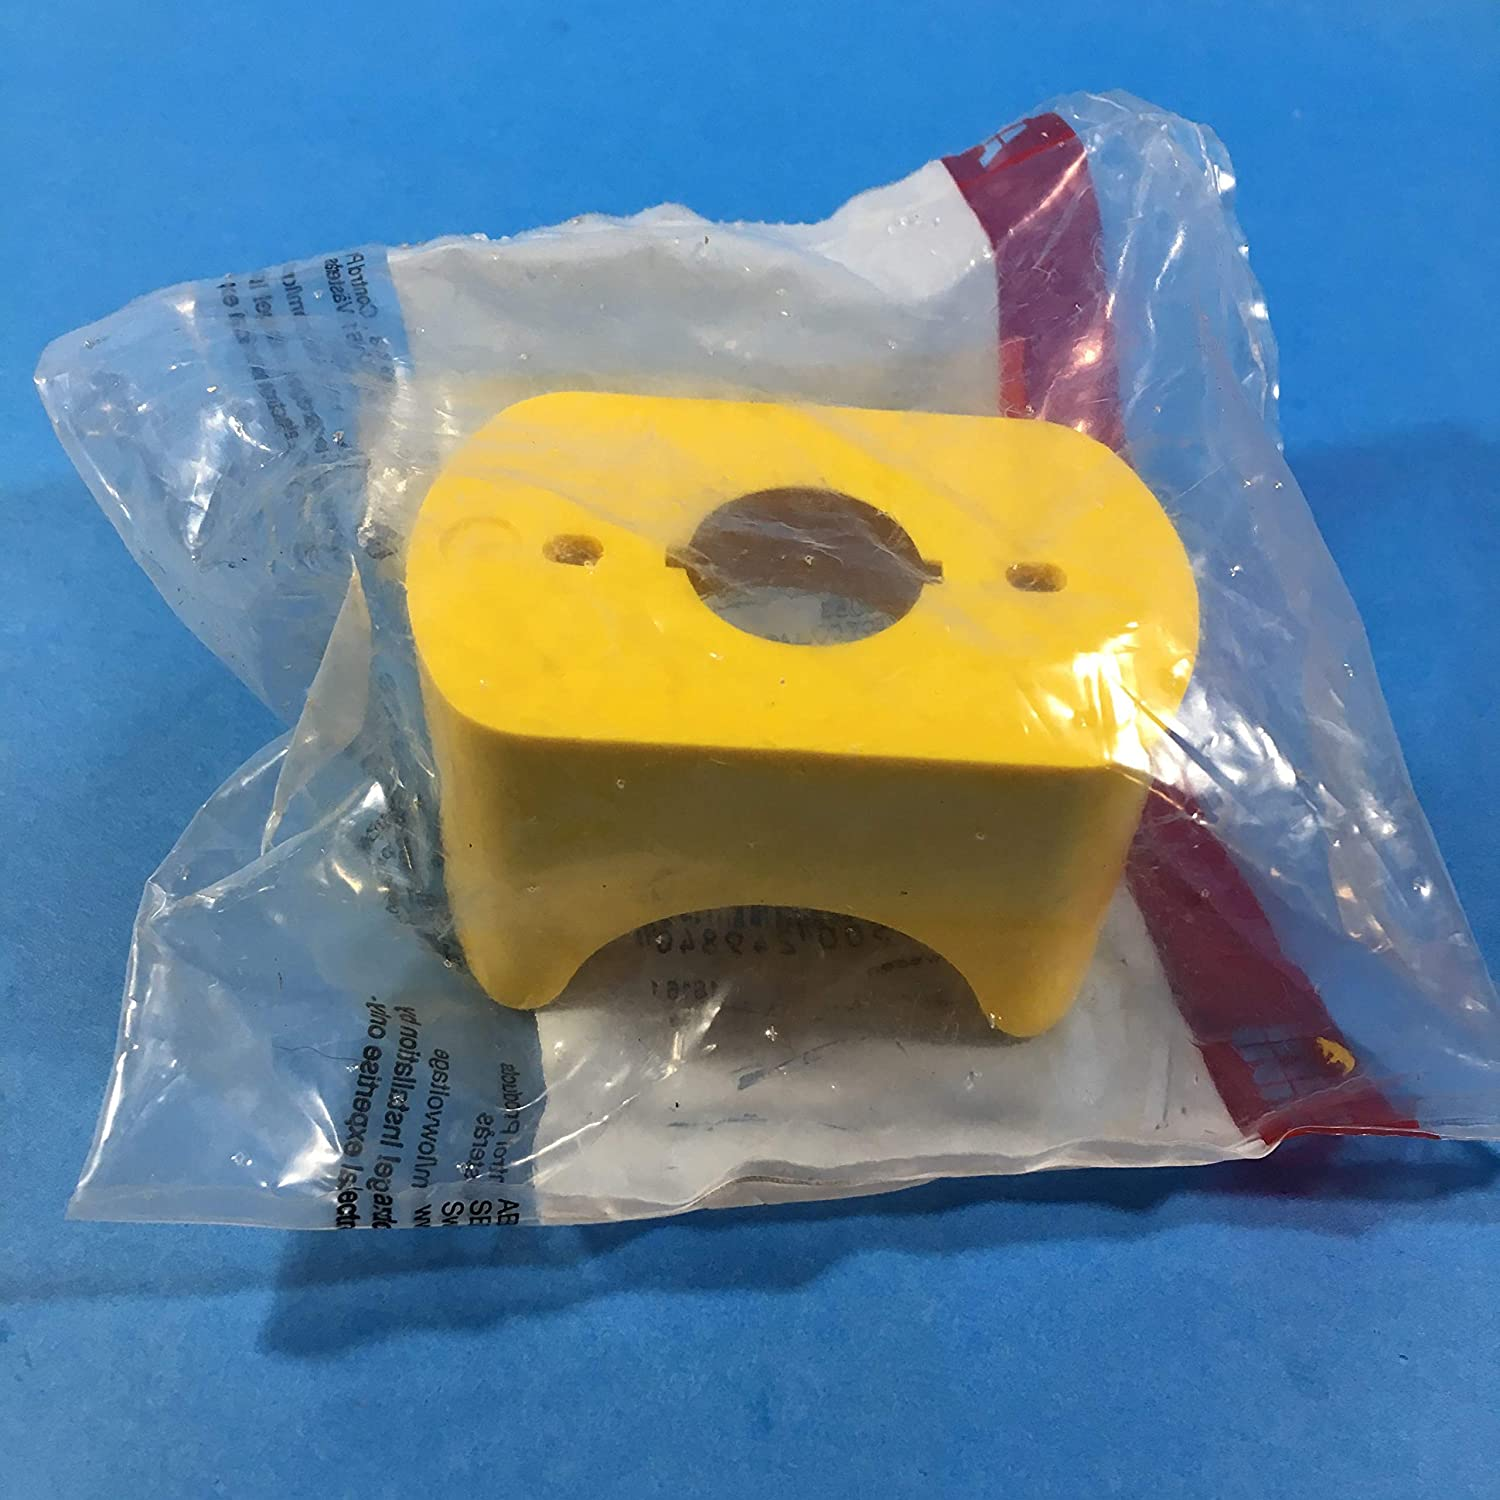 ABB KA1-8053 Emergency Stop Shroud, For Use With Pushbuttons ...